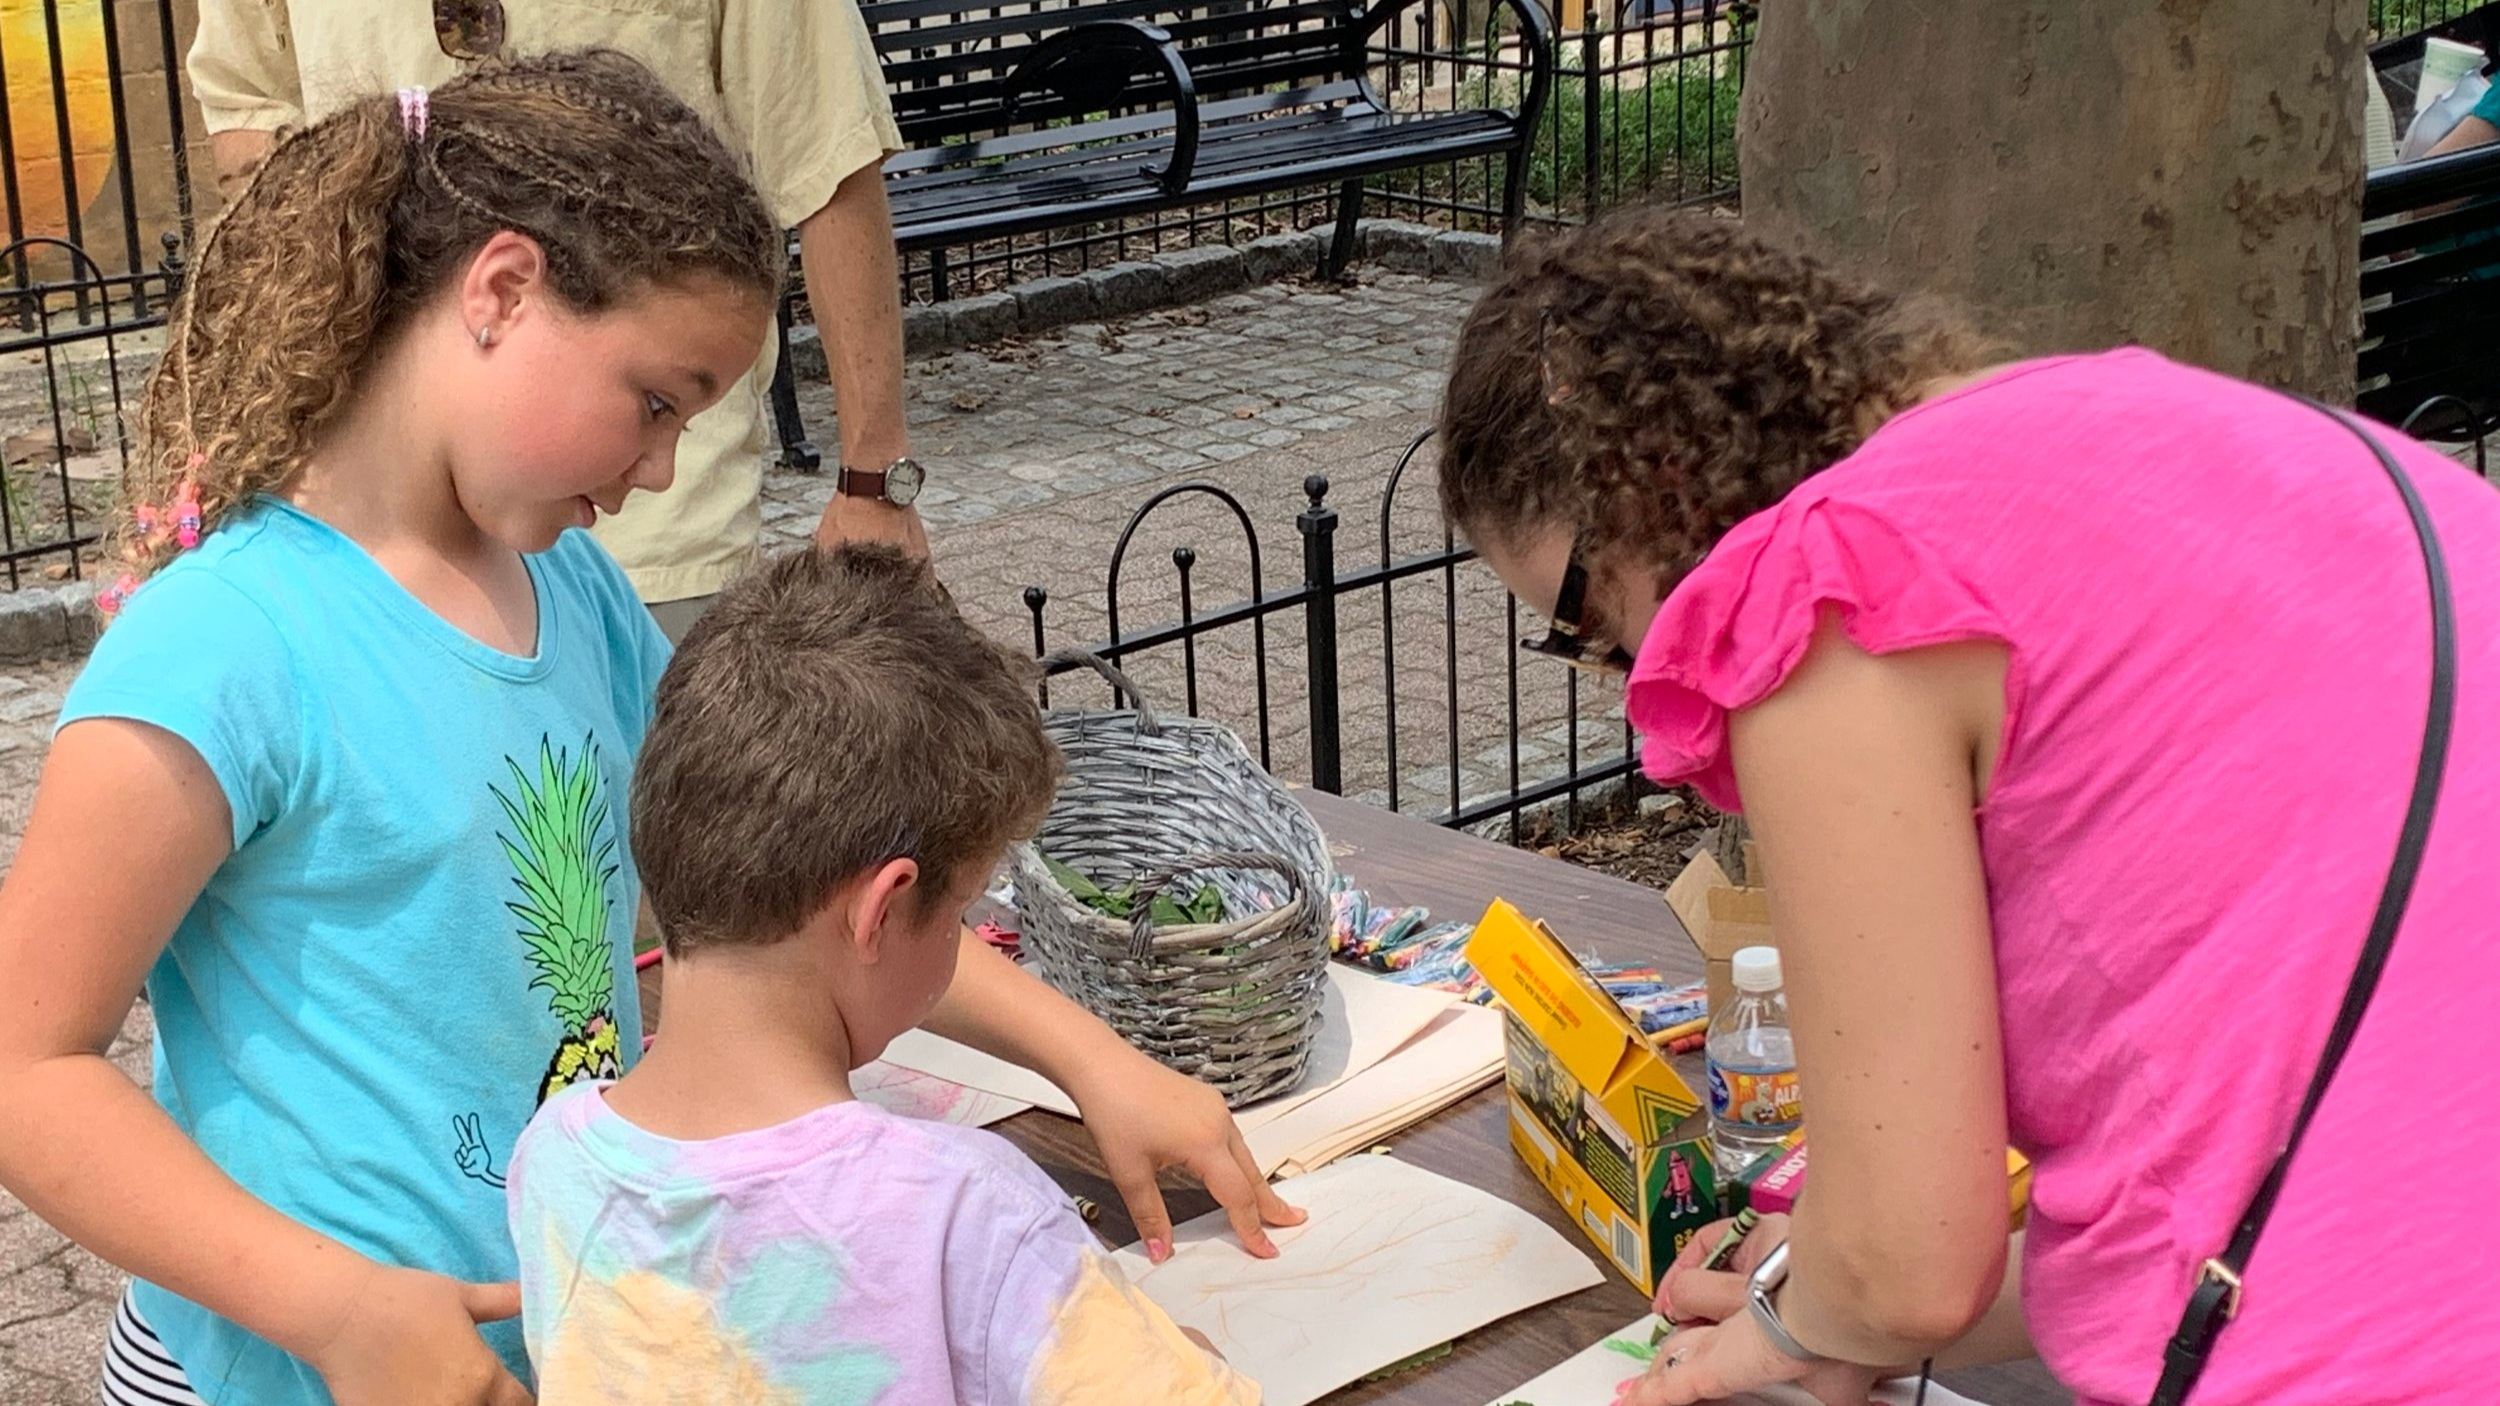 Youth Programs - The Franklin Institute, Fleisher Art Memorial and DVA members will organize free educational programing for youth.